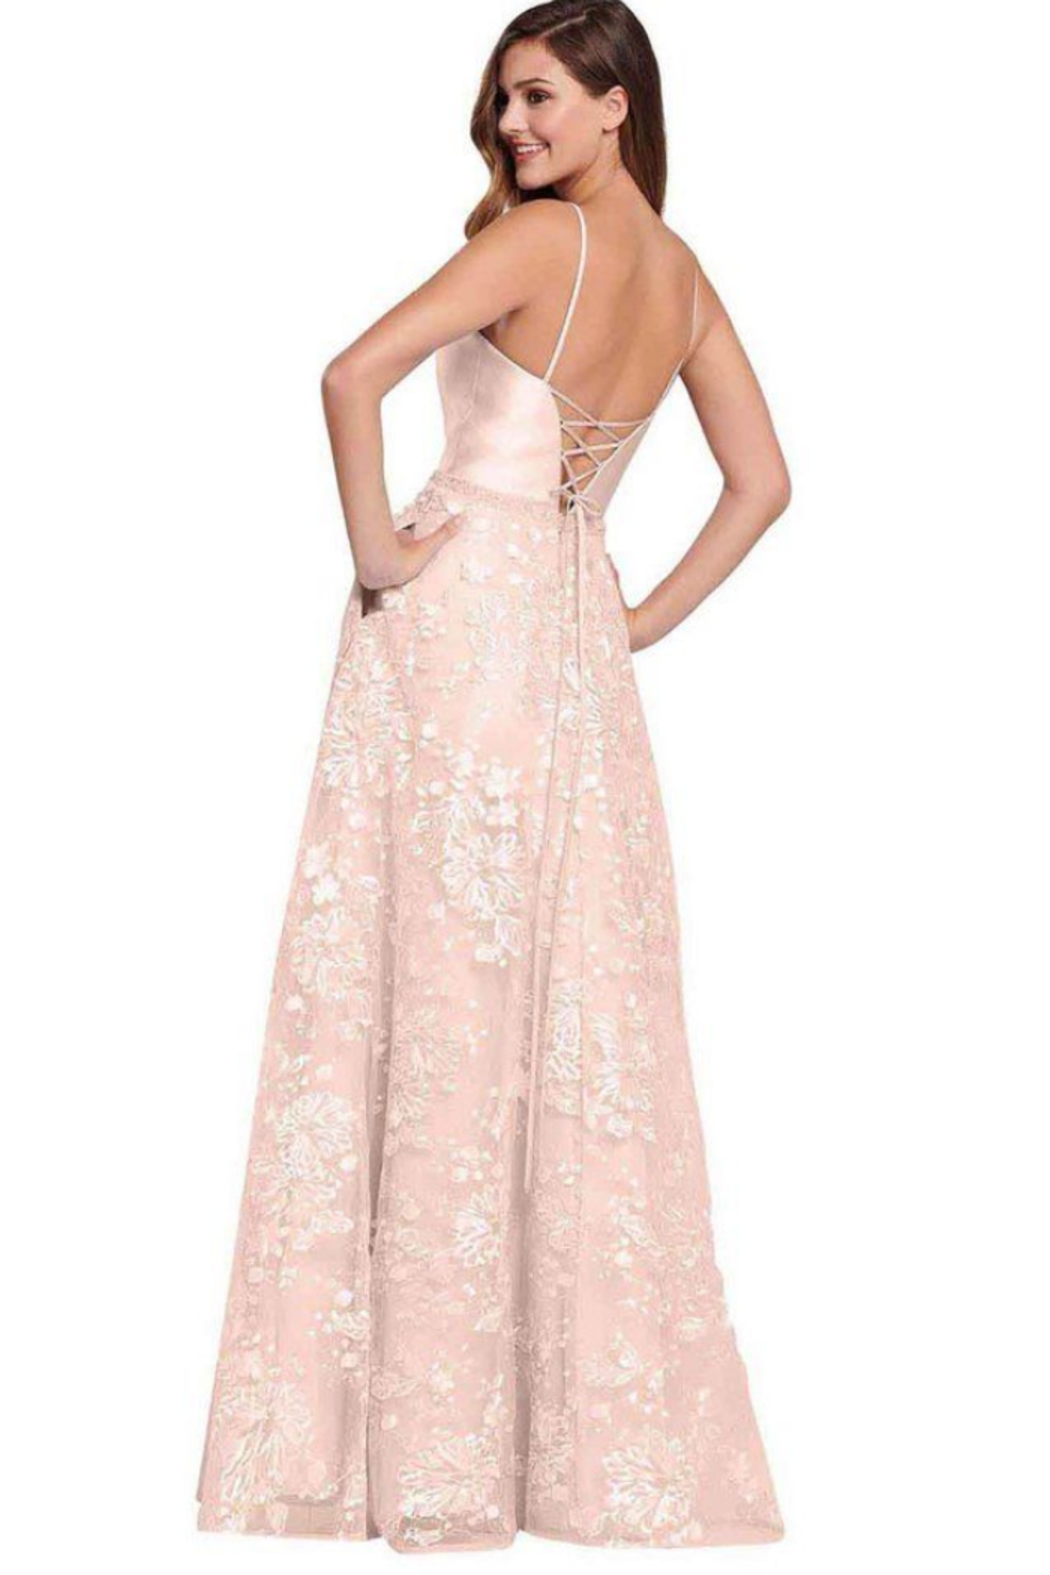 Ellie Wilde ew119037 - Long Lace Prom Gown - Front Cropped Image